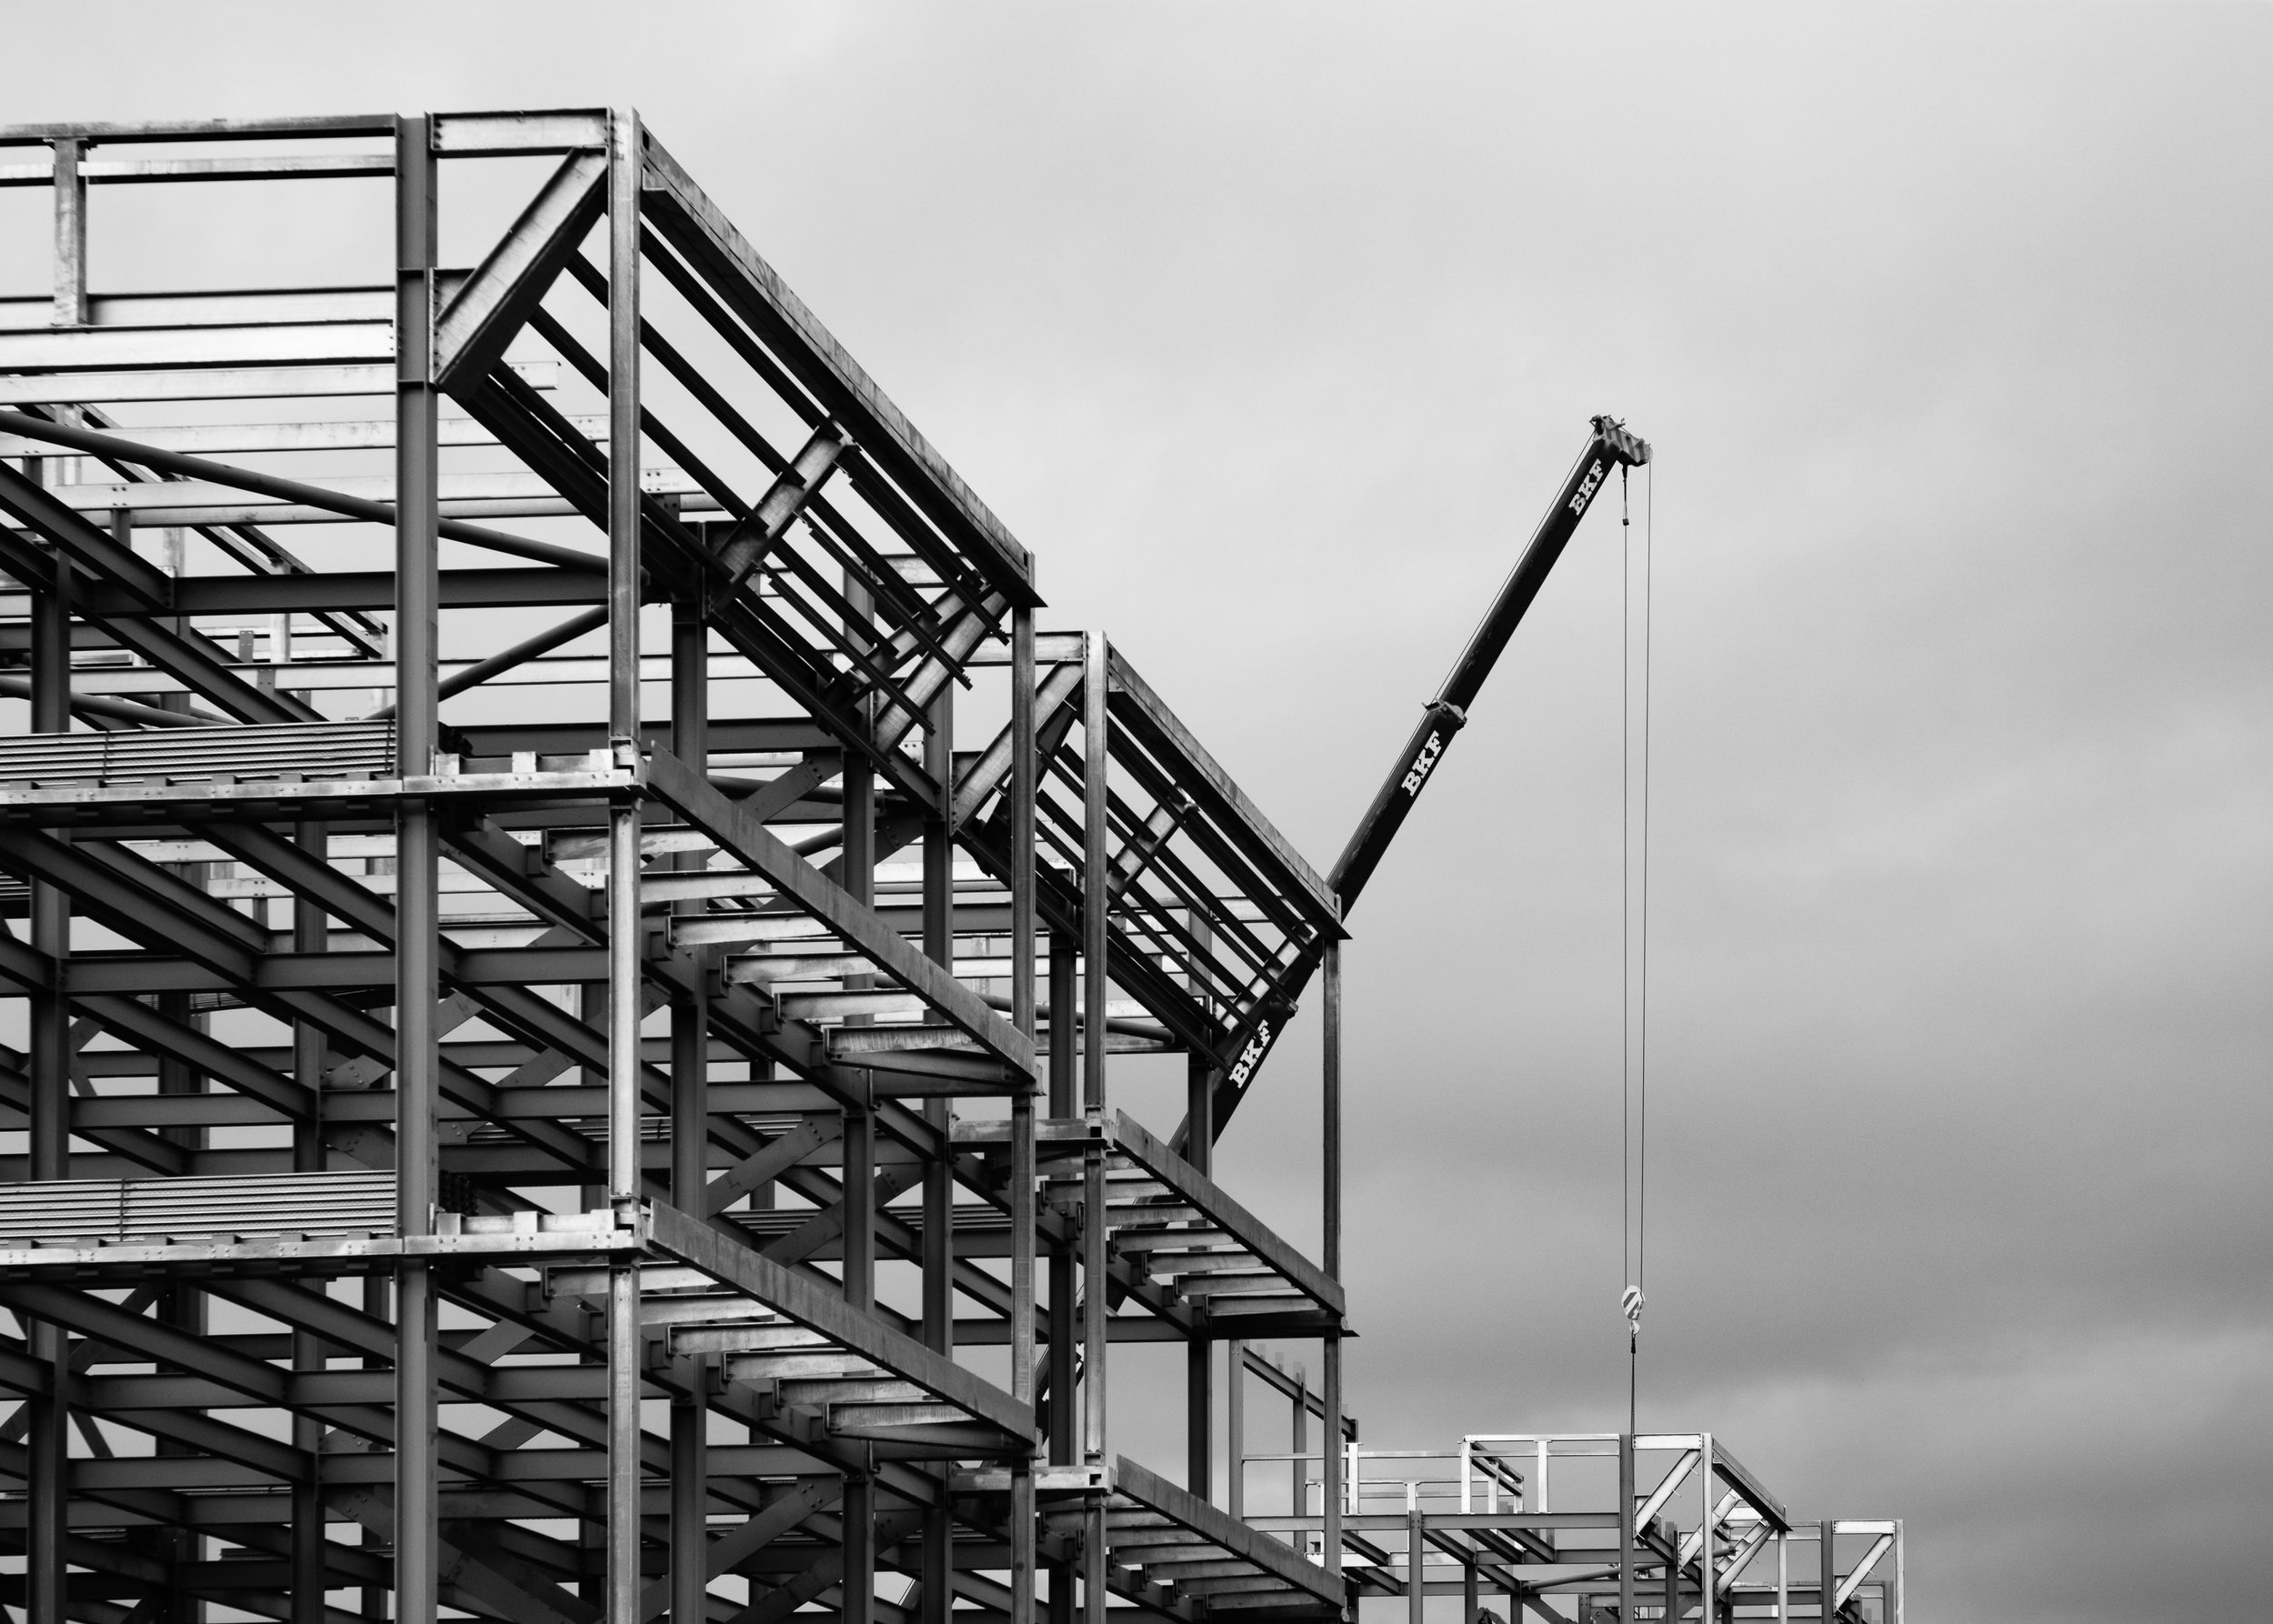 New housing being constructed in Dalmarnock [XT2 / Acros]